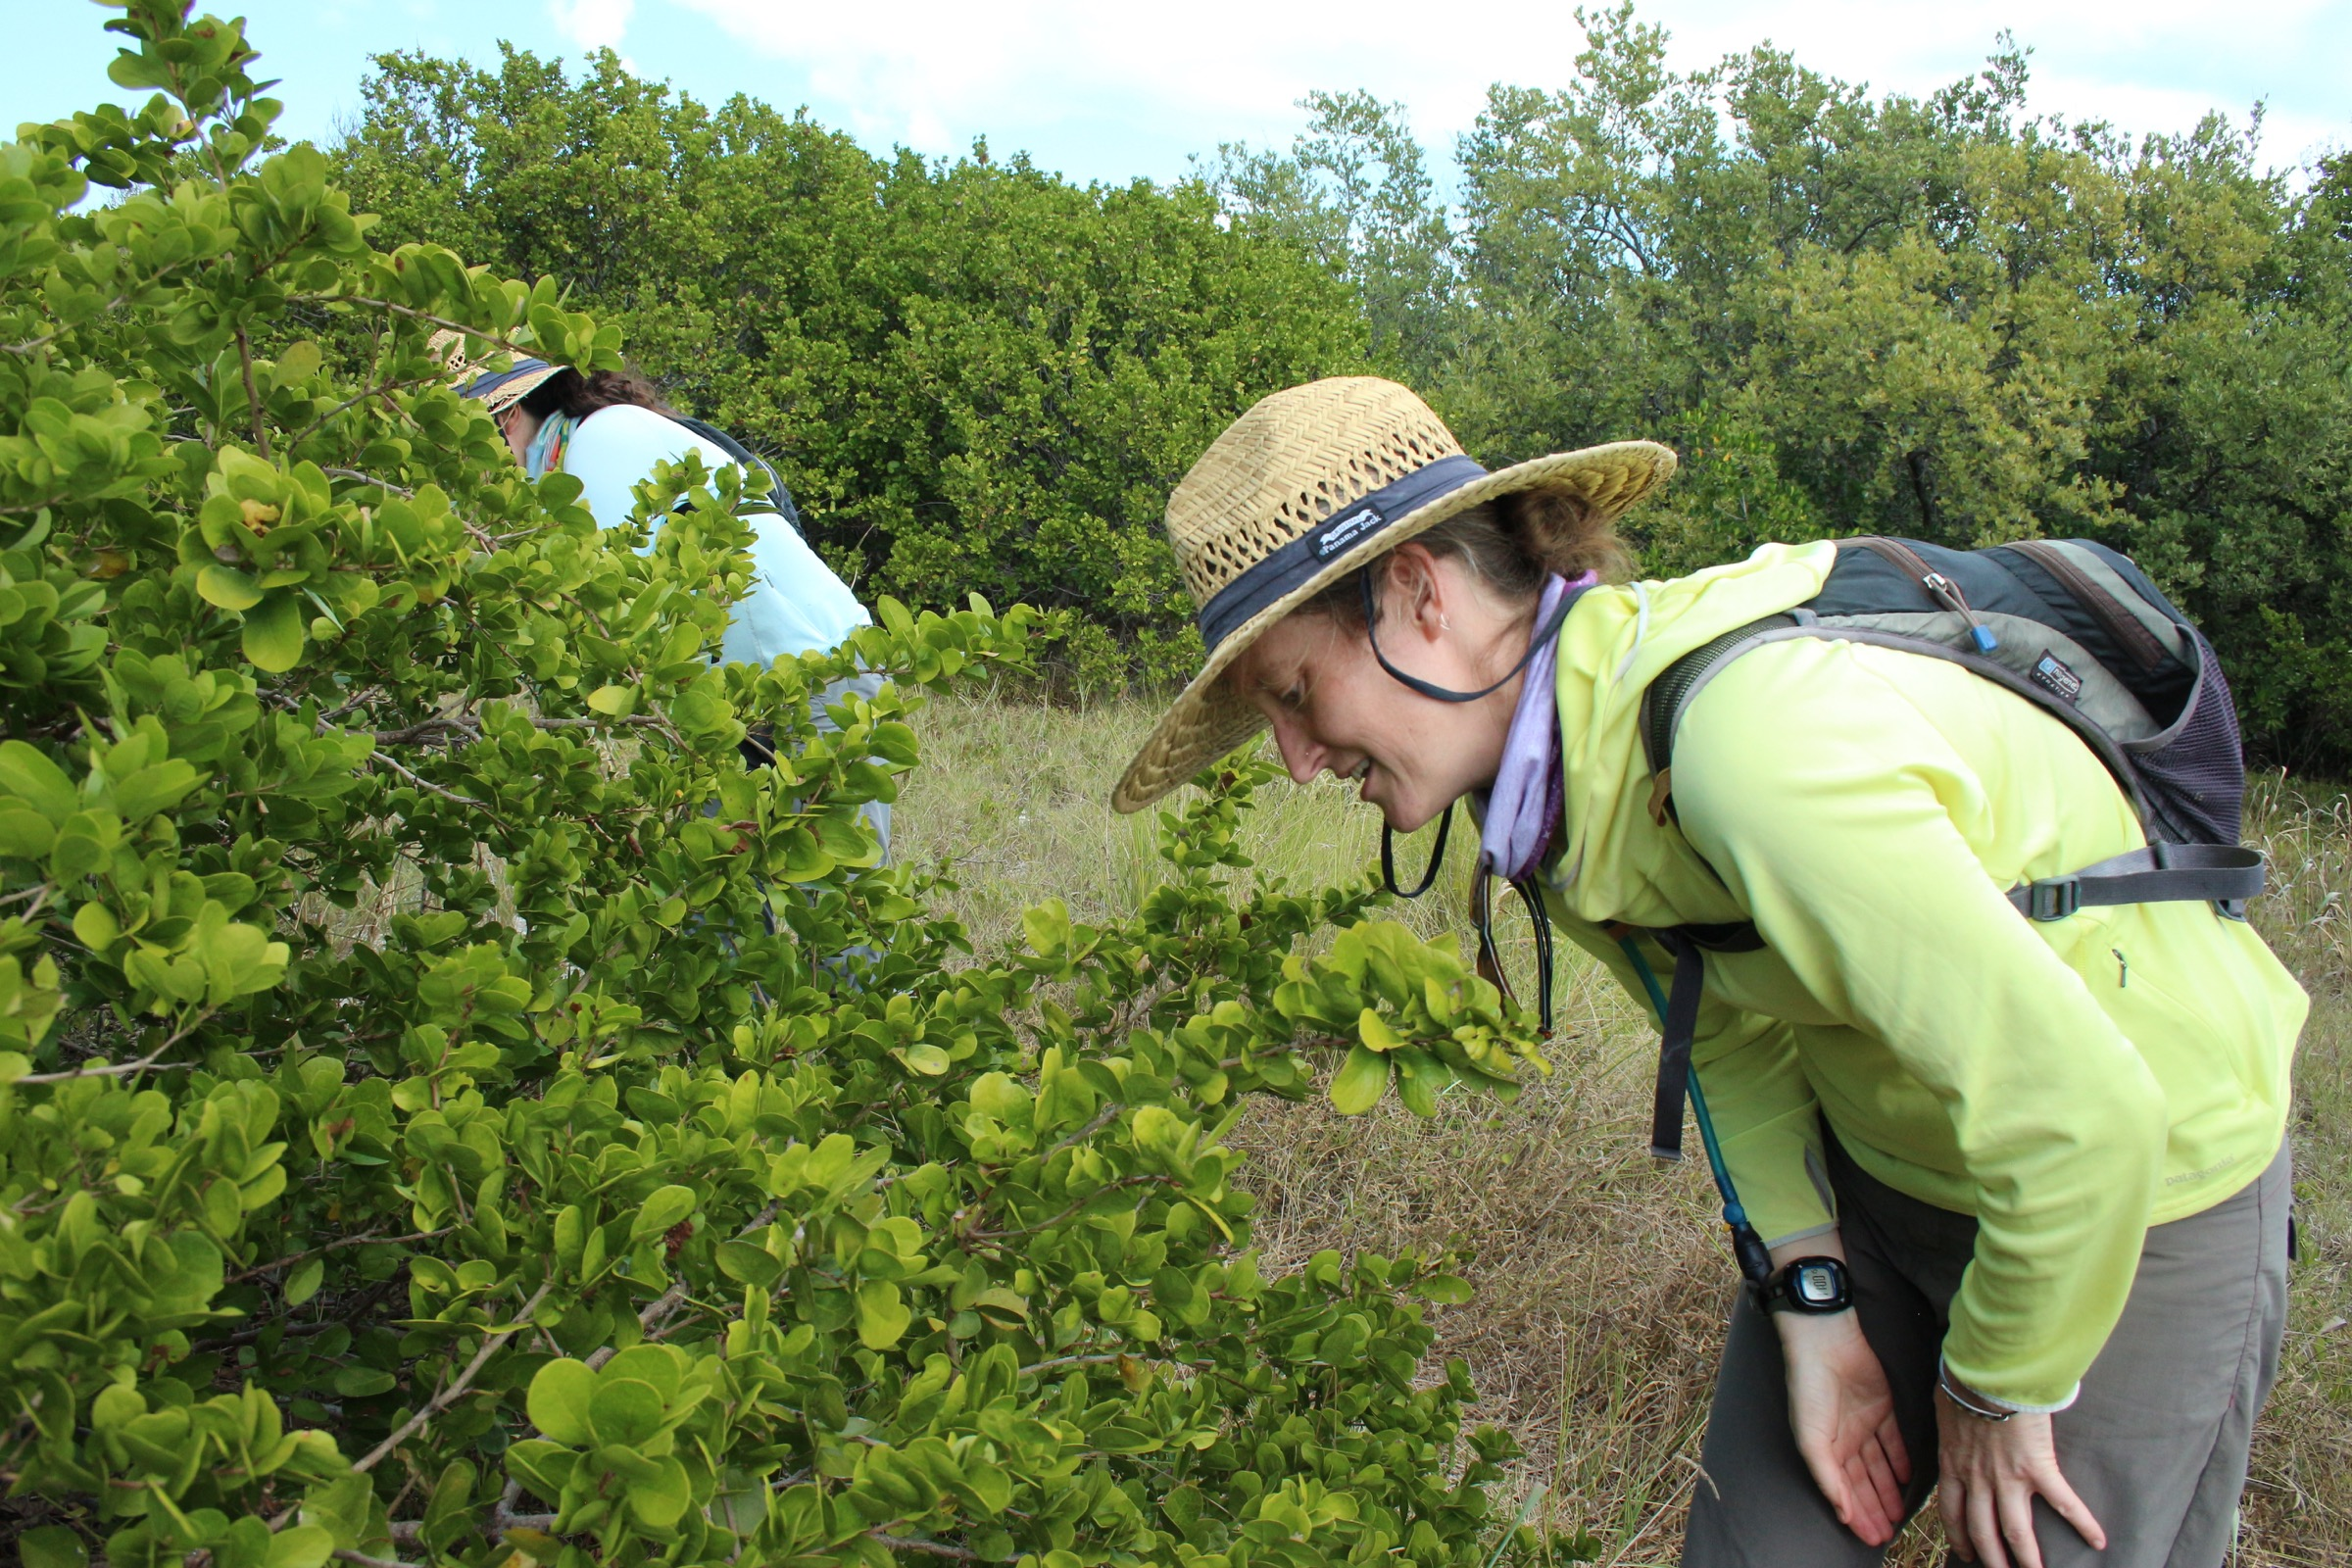 Erica Henry (foreground) and Sarah Cabrera Steele look for the eggs and caterpillars of Miami blue butterflies on a blackbead bush (<em>Pithecellobium keyense</em>) on Boca Grande Key in the Key West National Wildlife Refuge. Photograph by Hannah Hoag